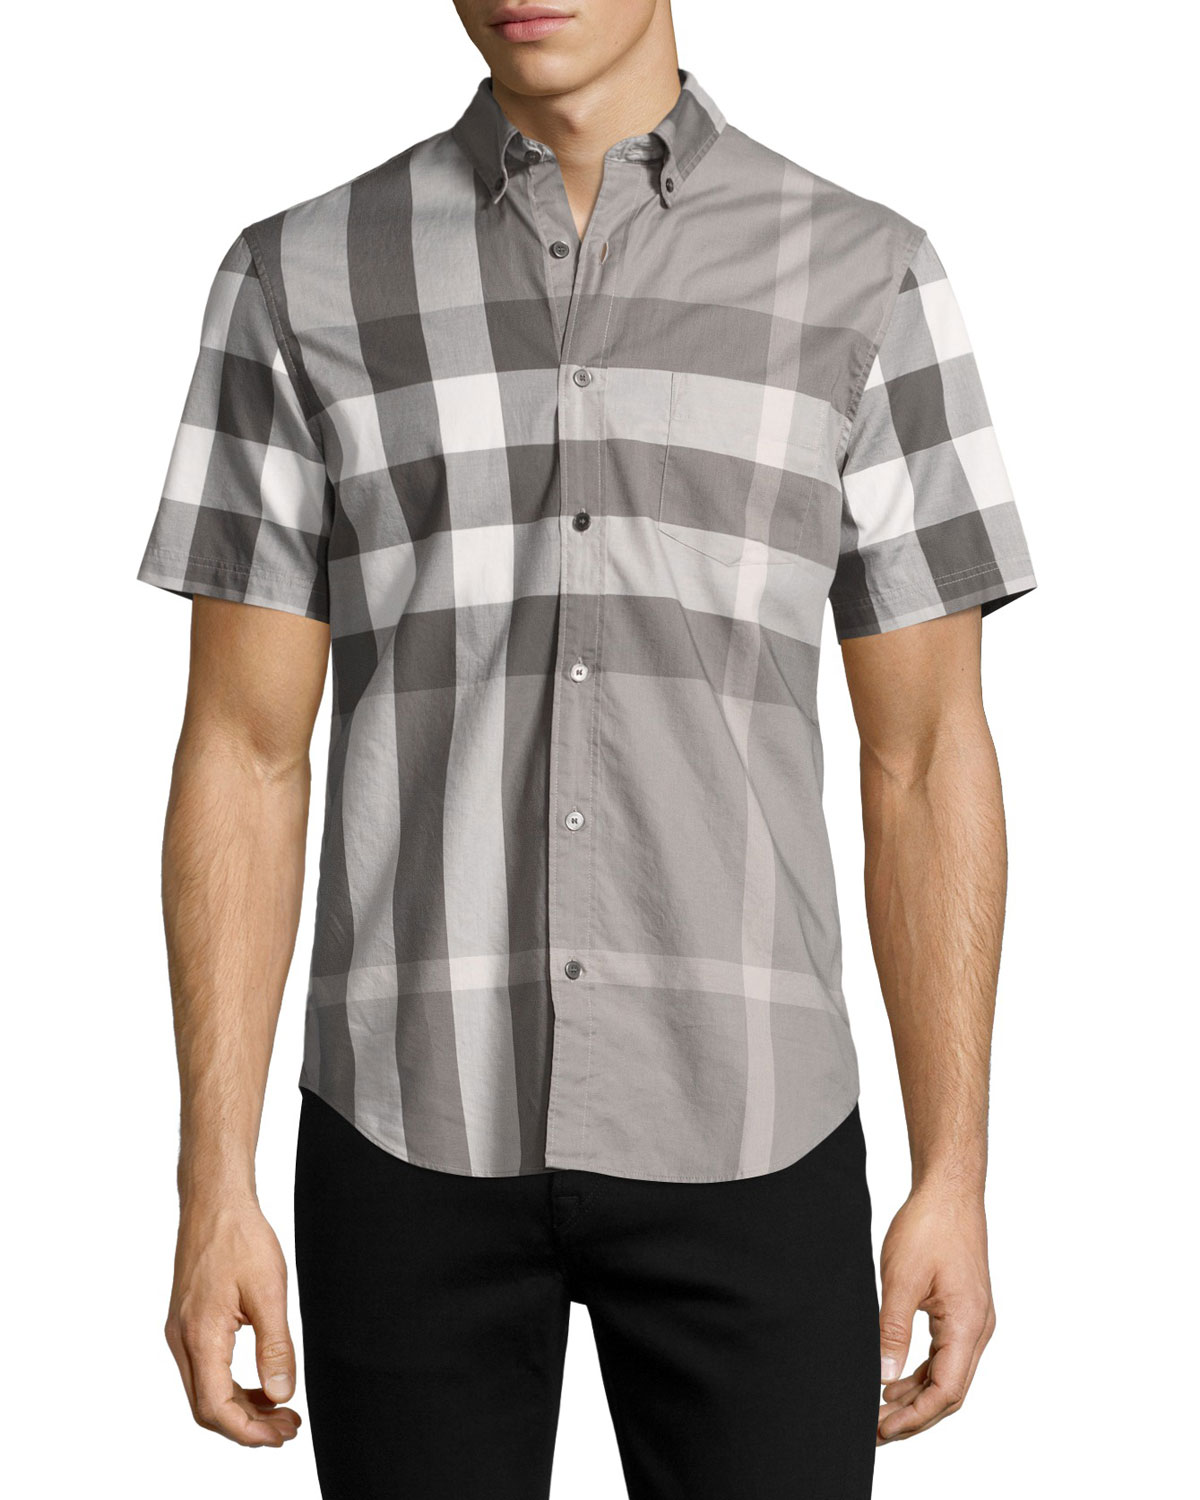 772c60db4 Burberry Fred Check Short-Sleeve Woven Shirt, Pale Gray | Neiman Marcus